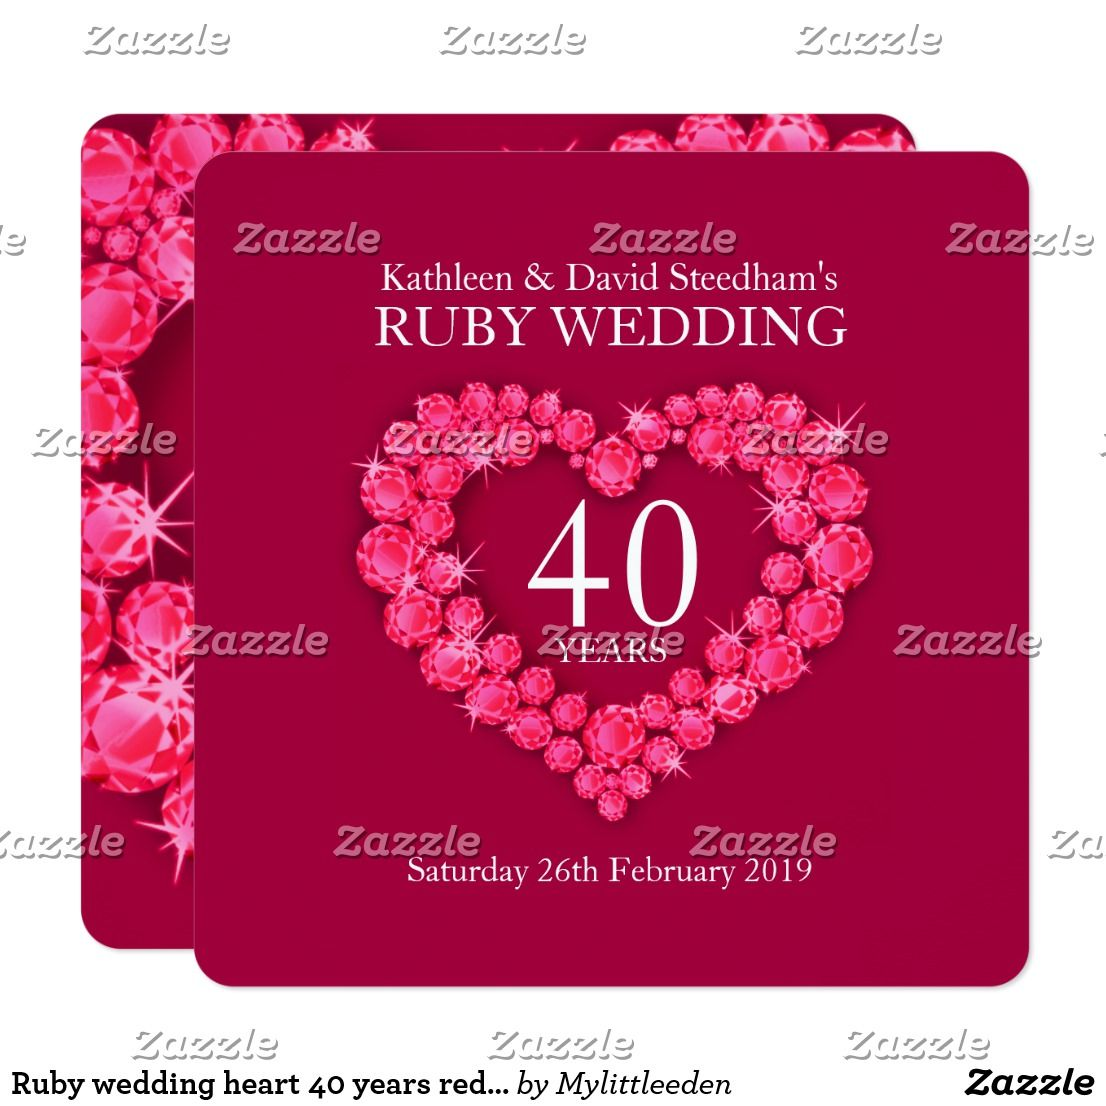 Ruby wedding heart 40 years red party invite | { Wedding Invitations ...